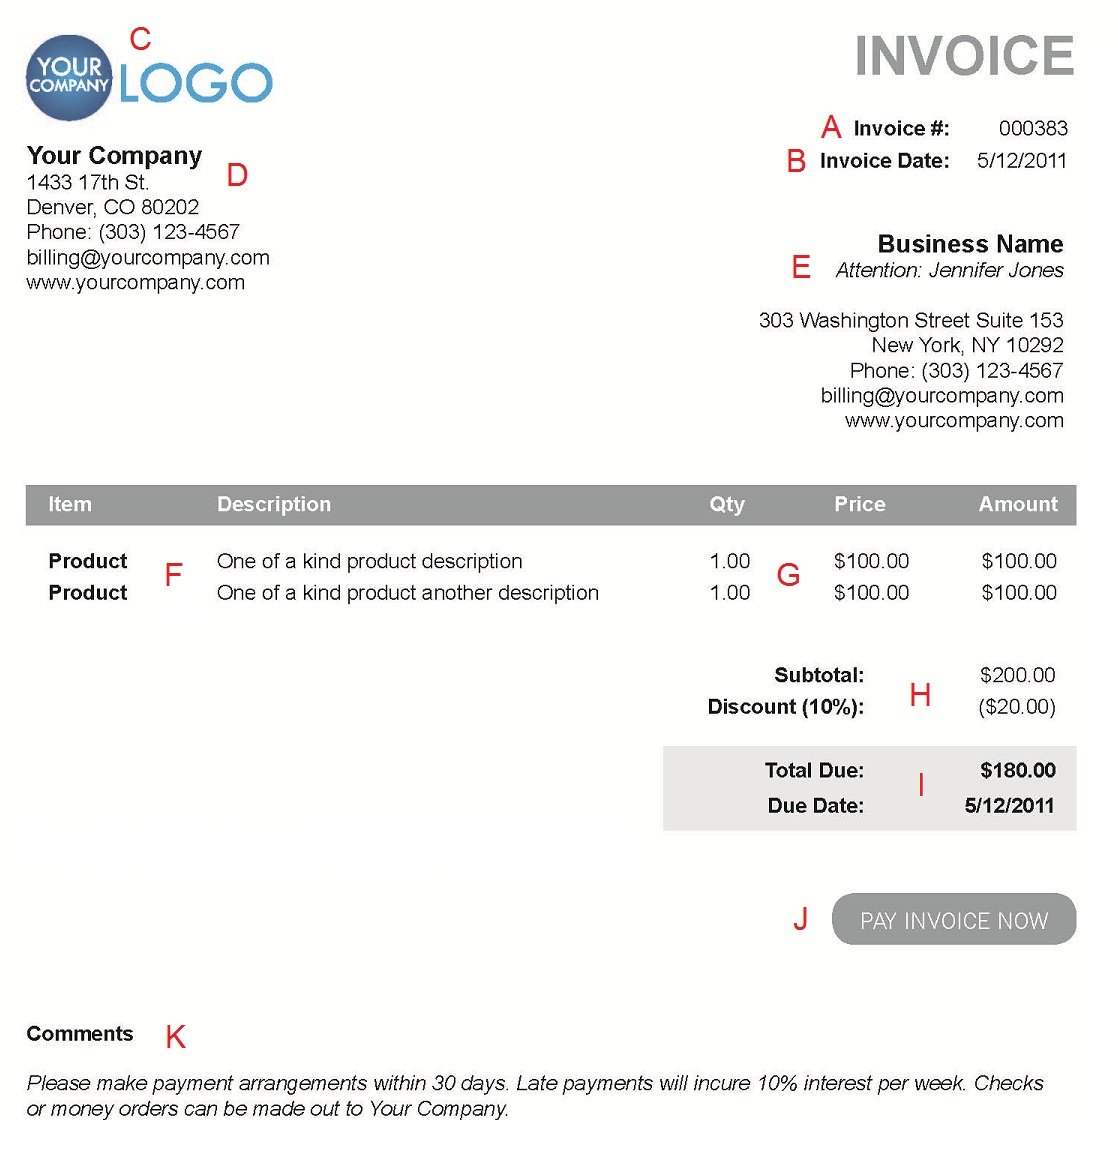 Hucareus  Remarkable The  Different Sections Of An Electronic Payment Invoice With Extraordinary A  With Divine Chase Online Invoicing Also Jeep Wrangler Unlimited Invoice In Addition Ford F Invoice And Invoice Quote As Well As How To Make Invoice In Word Additionally Invoice Estimate From Paysimplecom With Hucareus  Extraordinary The  Different Sections Of An Electronic Payment Invoice With Divine A  And Remarkable Chase Online Invoicing Also Jeep Wrangler Unlimited Invoice In Addition Ford F Invoice From Paysimplecom